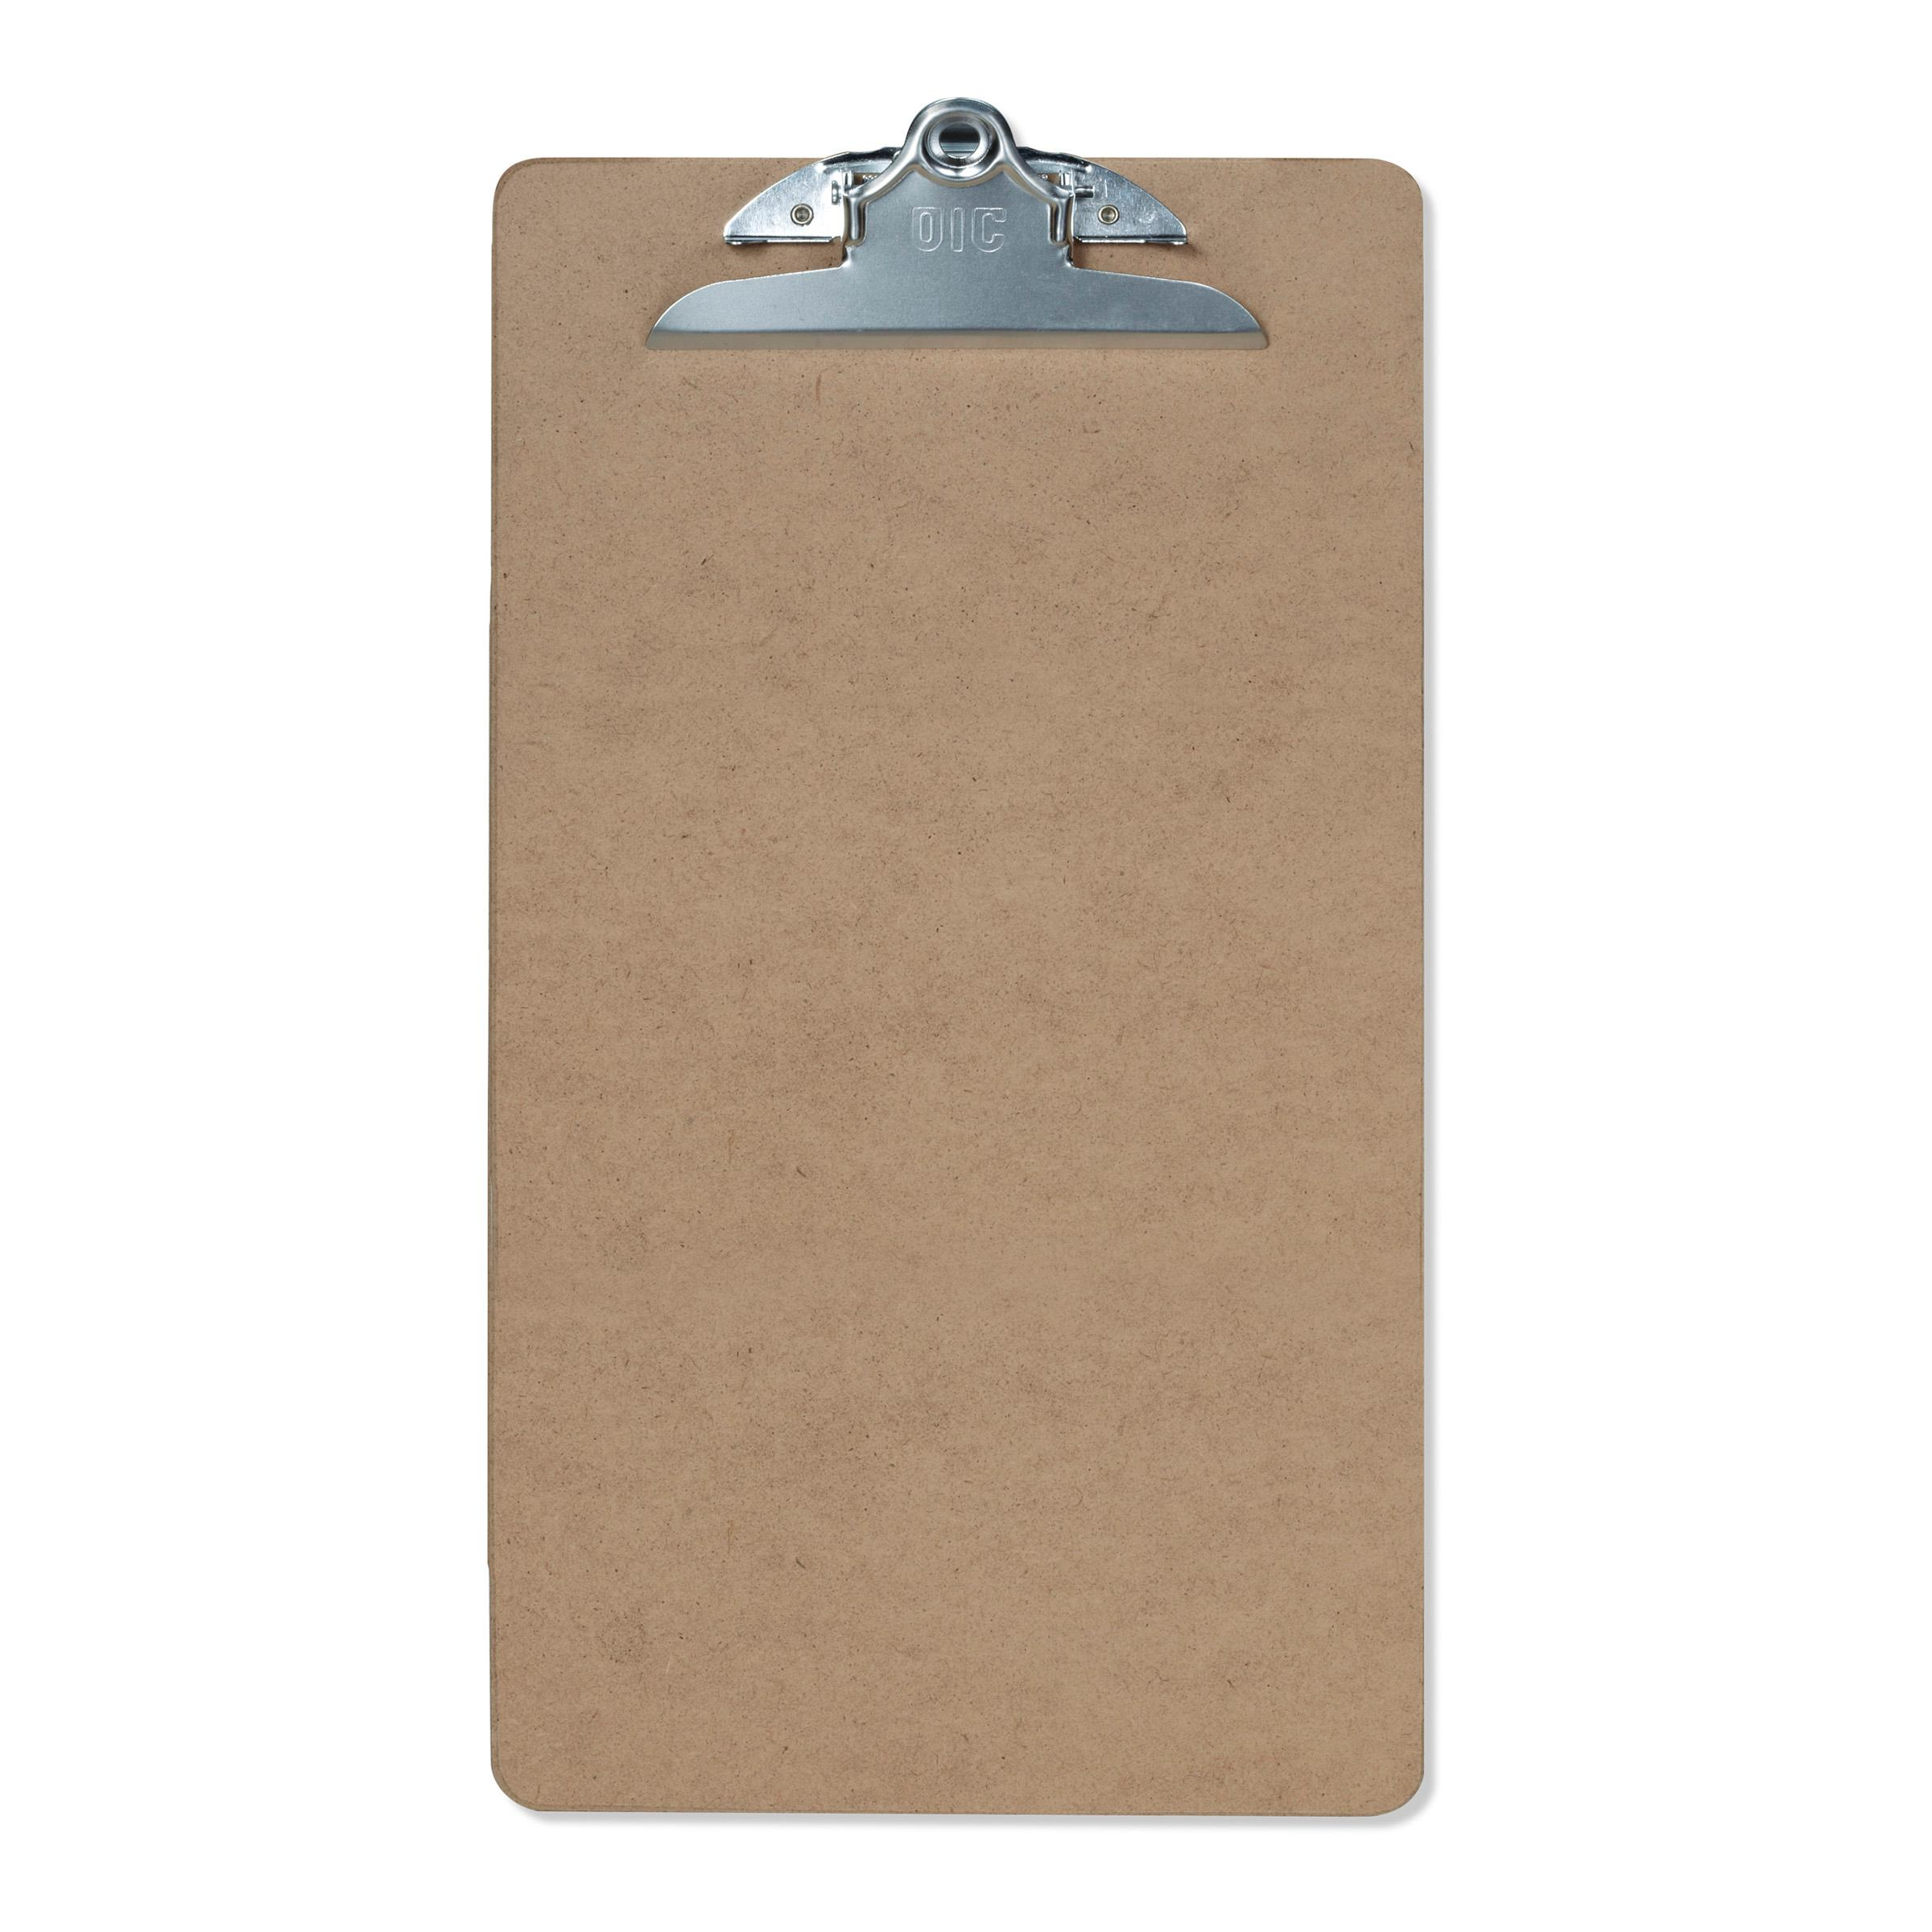 amazon com officemate wood clipboard legal size recycled 1